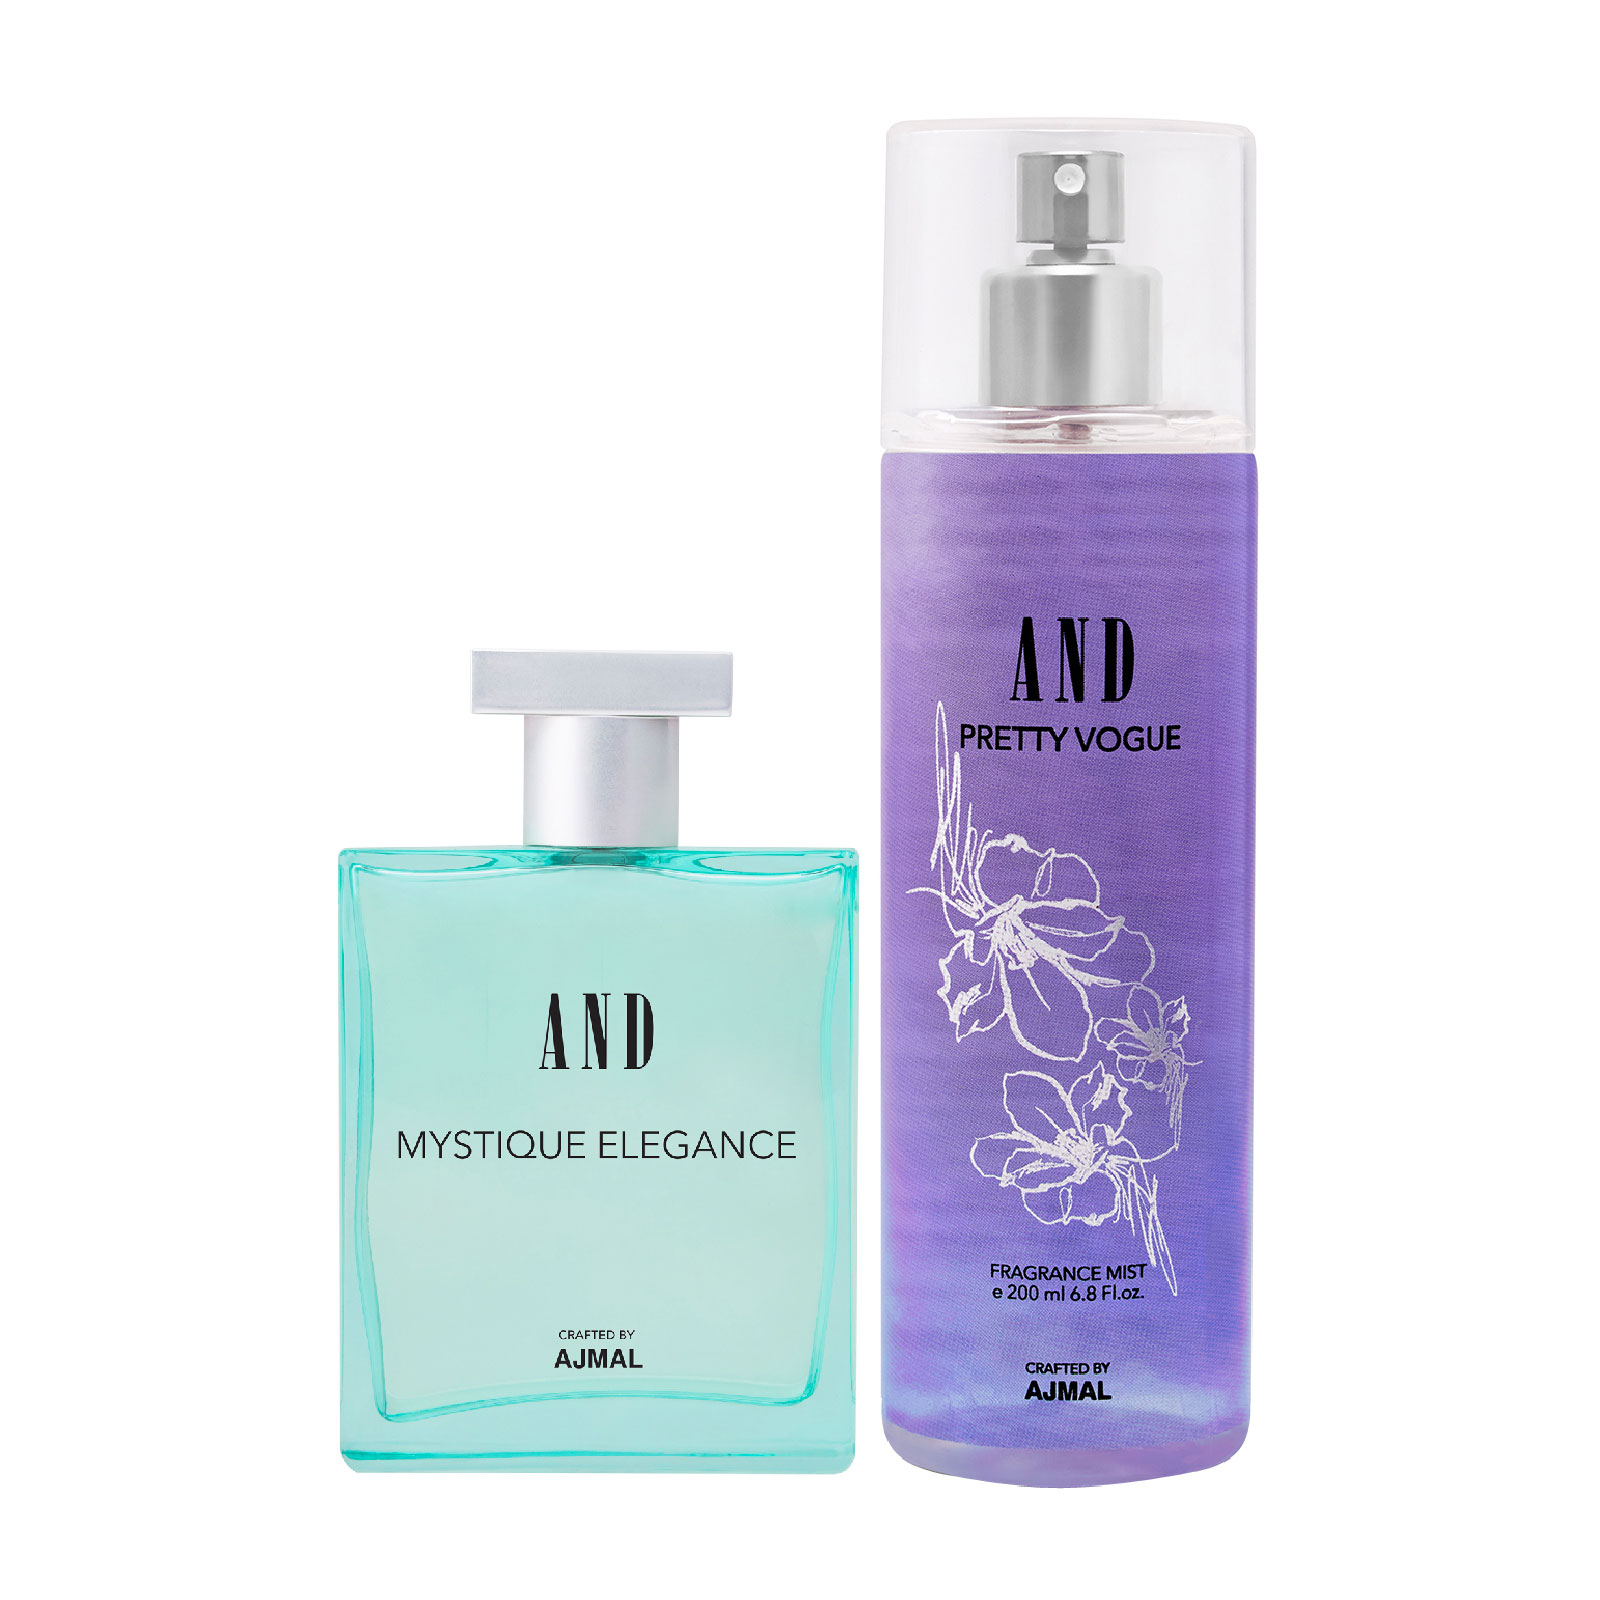 AND Crafted By Ajmal | AND Mystique Elegance EDP 50ML & Pretty Vogue Body Mist 200ML Pack of 2 for Women Crafted by Ajmal + 2 Parfum Testers